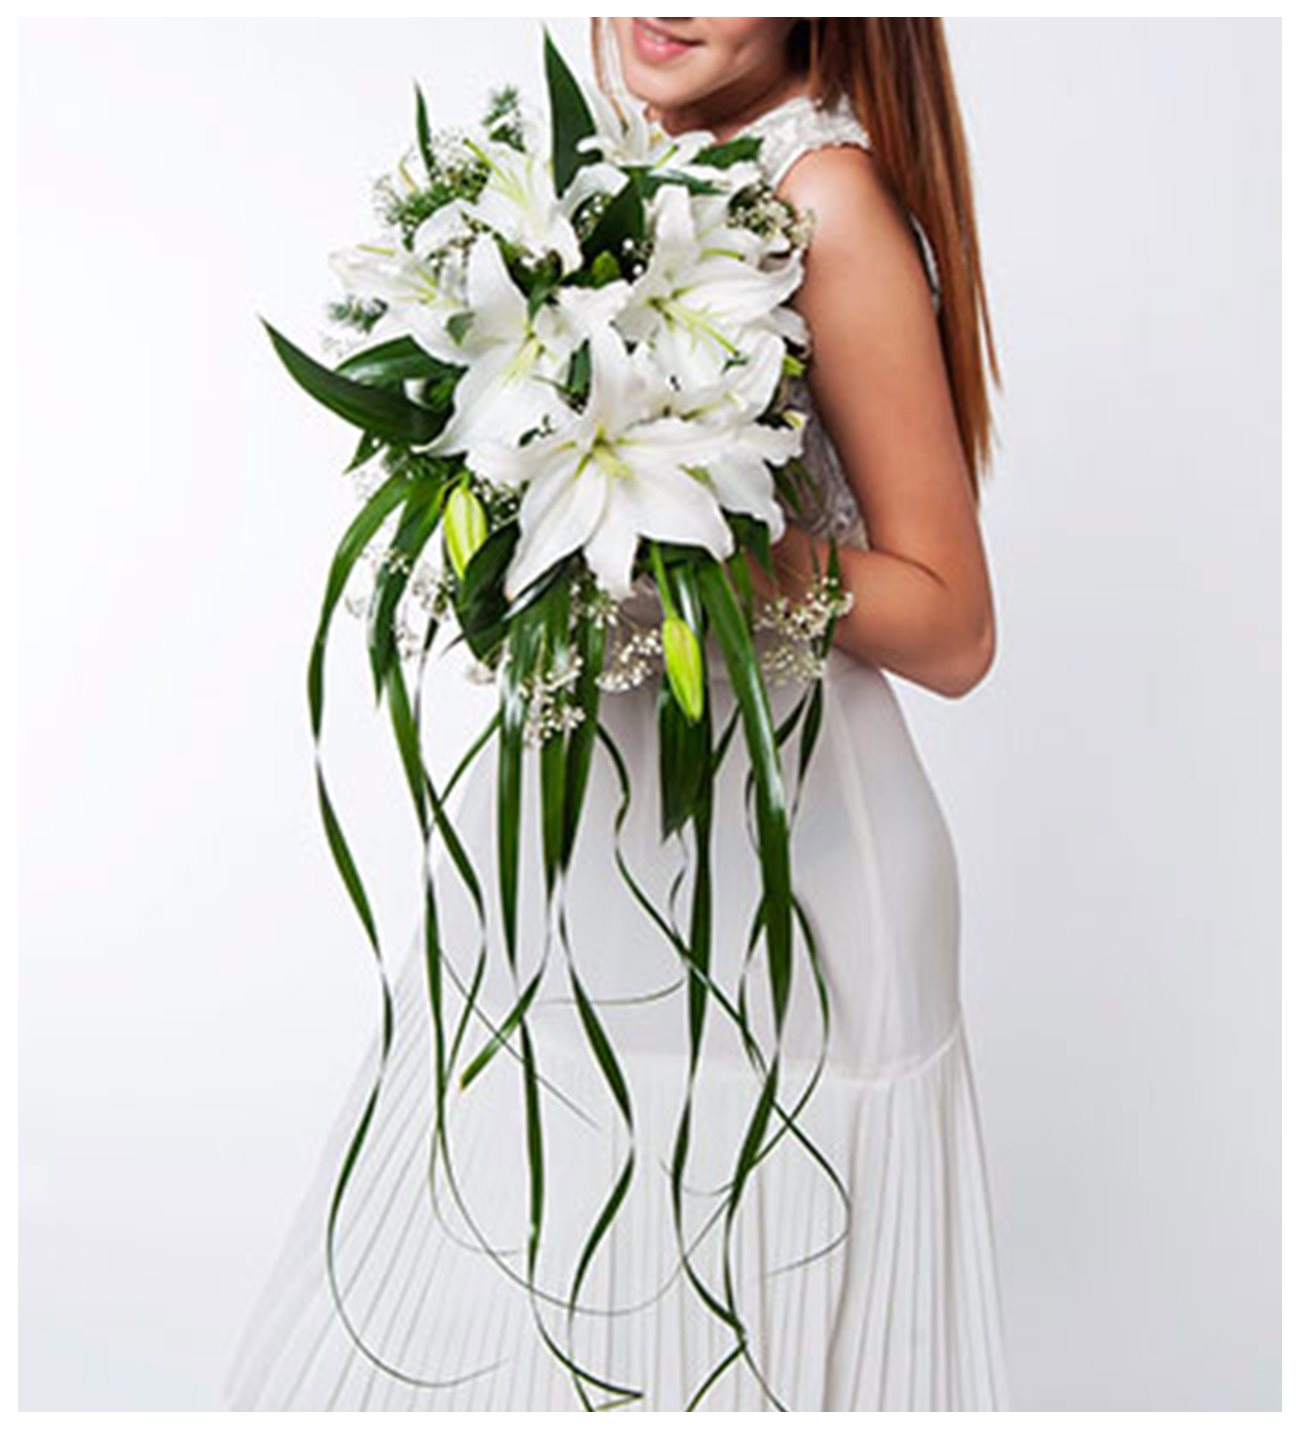 Lilies love wedding bouquet wedding bouquet of white lilies izmirmasajfo